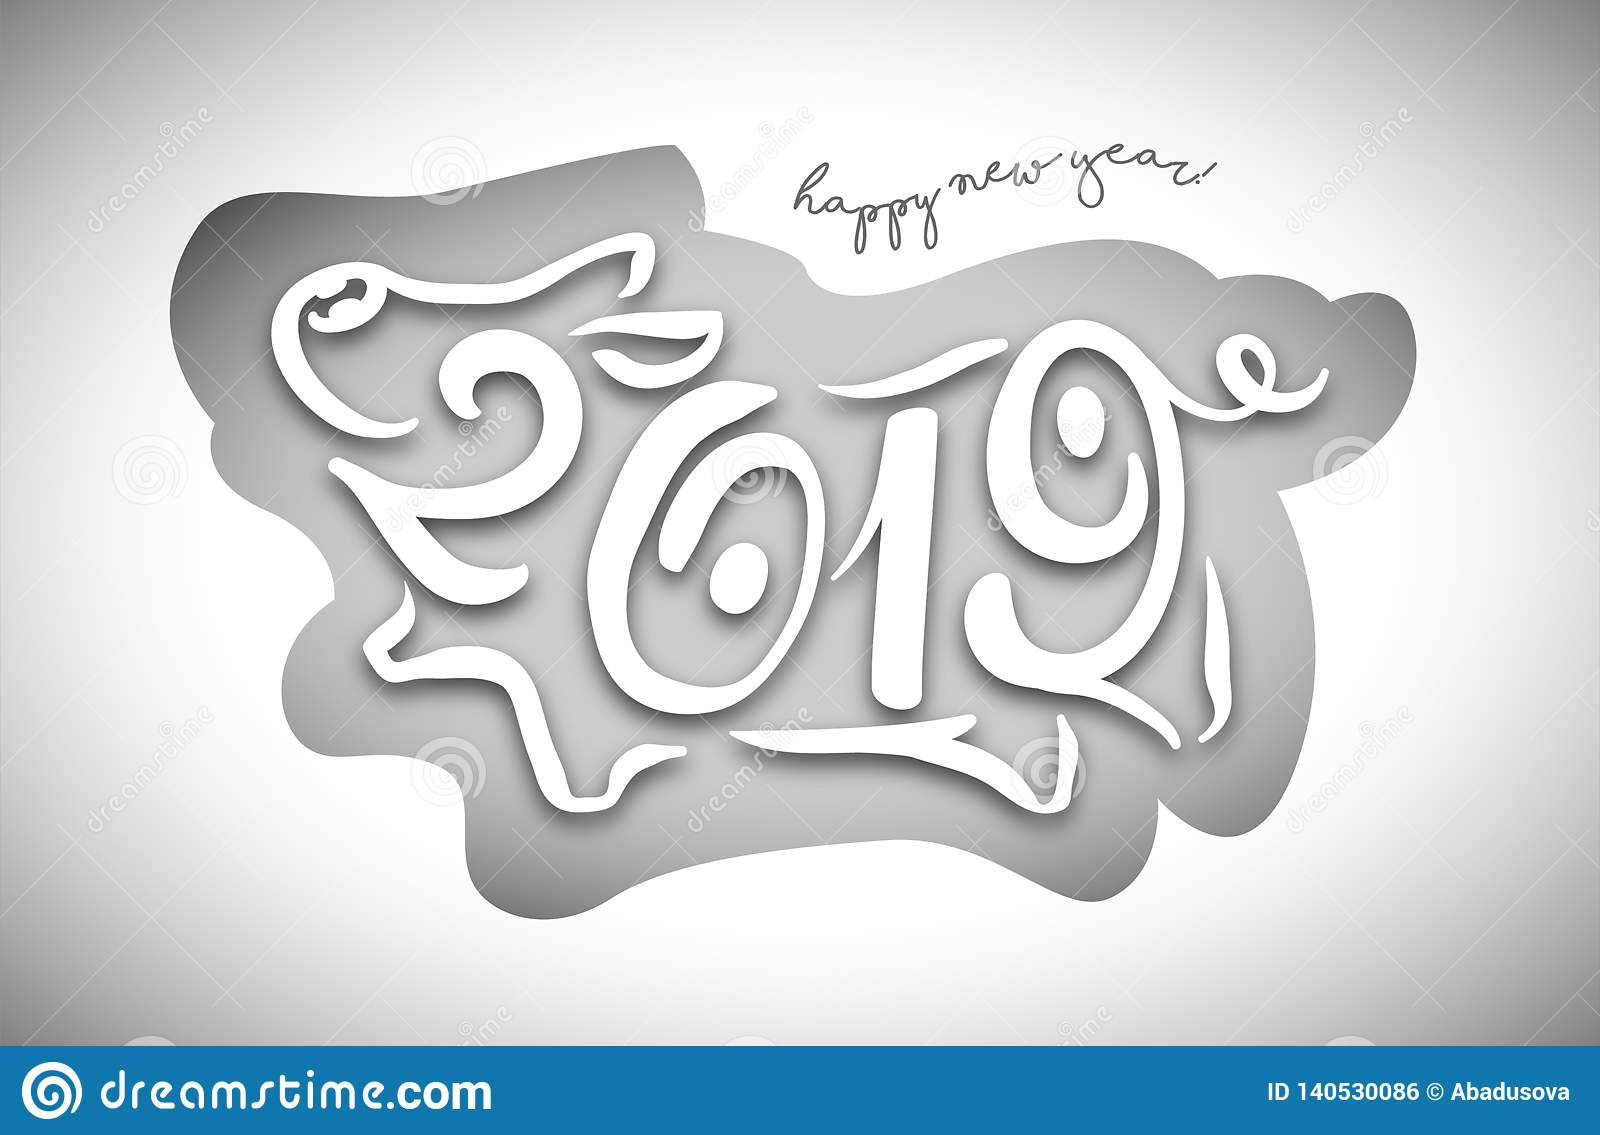 Cute funny pig. Happy New Year. Chinese symbol of the 2019 year. Excellent festive gift card. Vector illustration